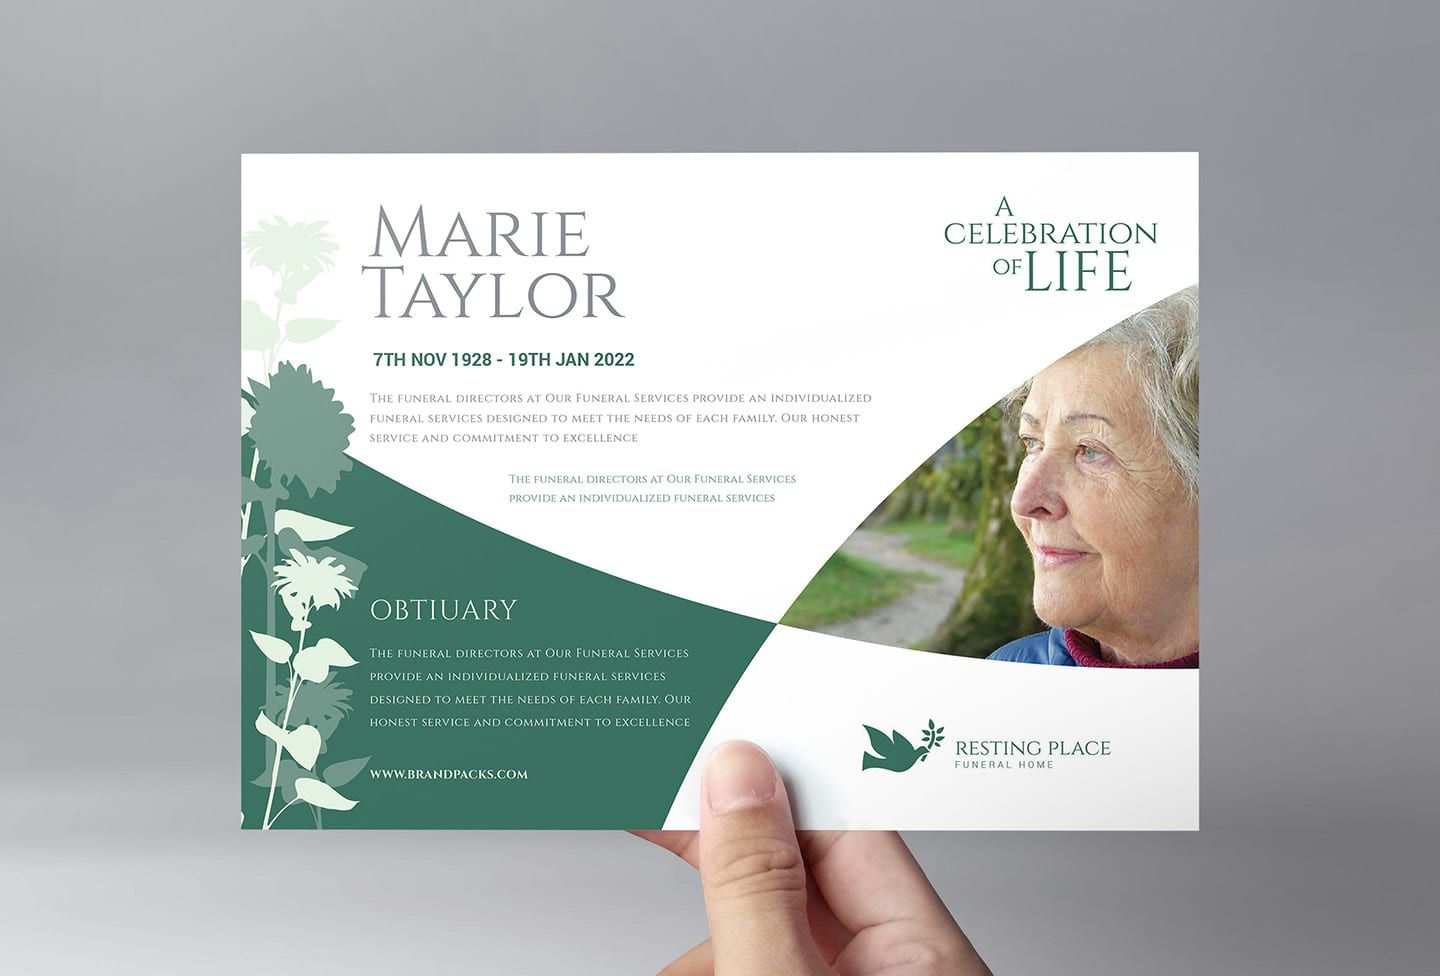 005 Stupendou Free Celebration Of Life Brochure Template Photo  FlyerFull